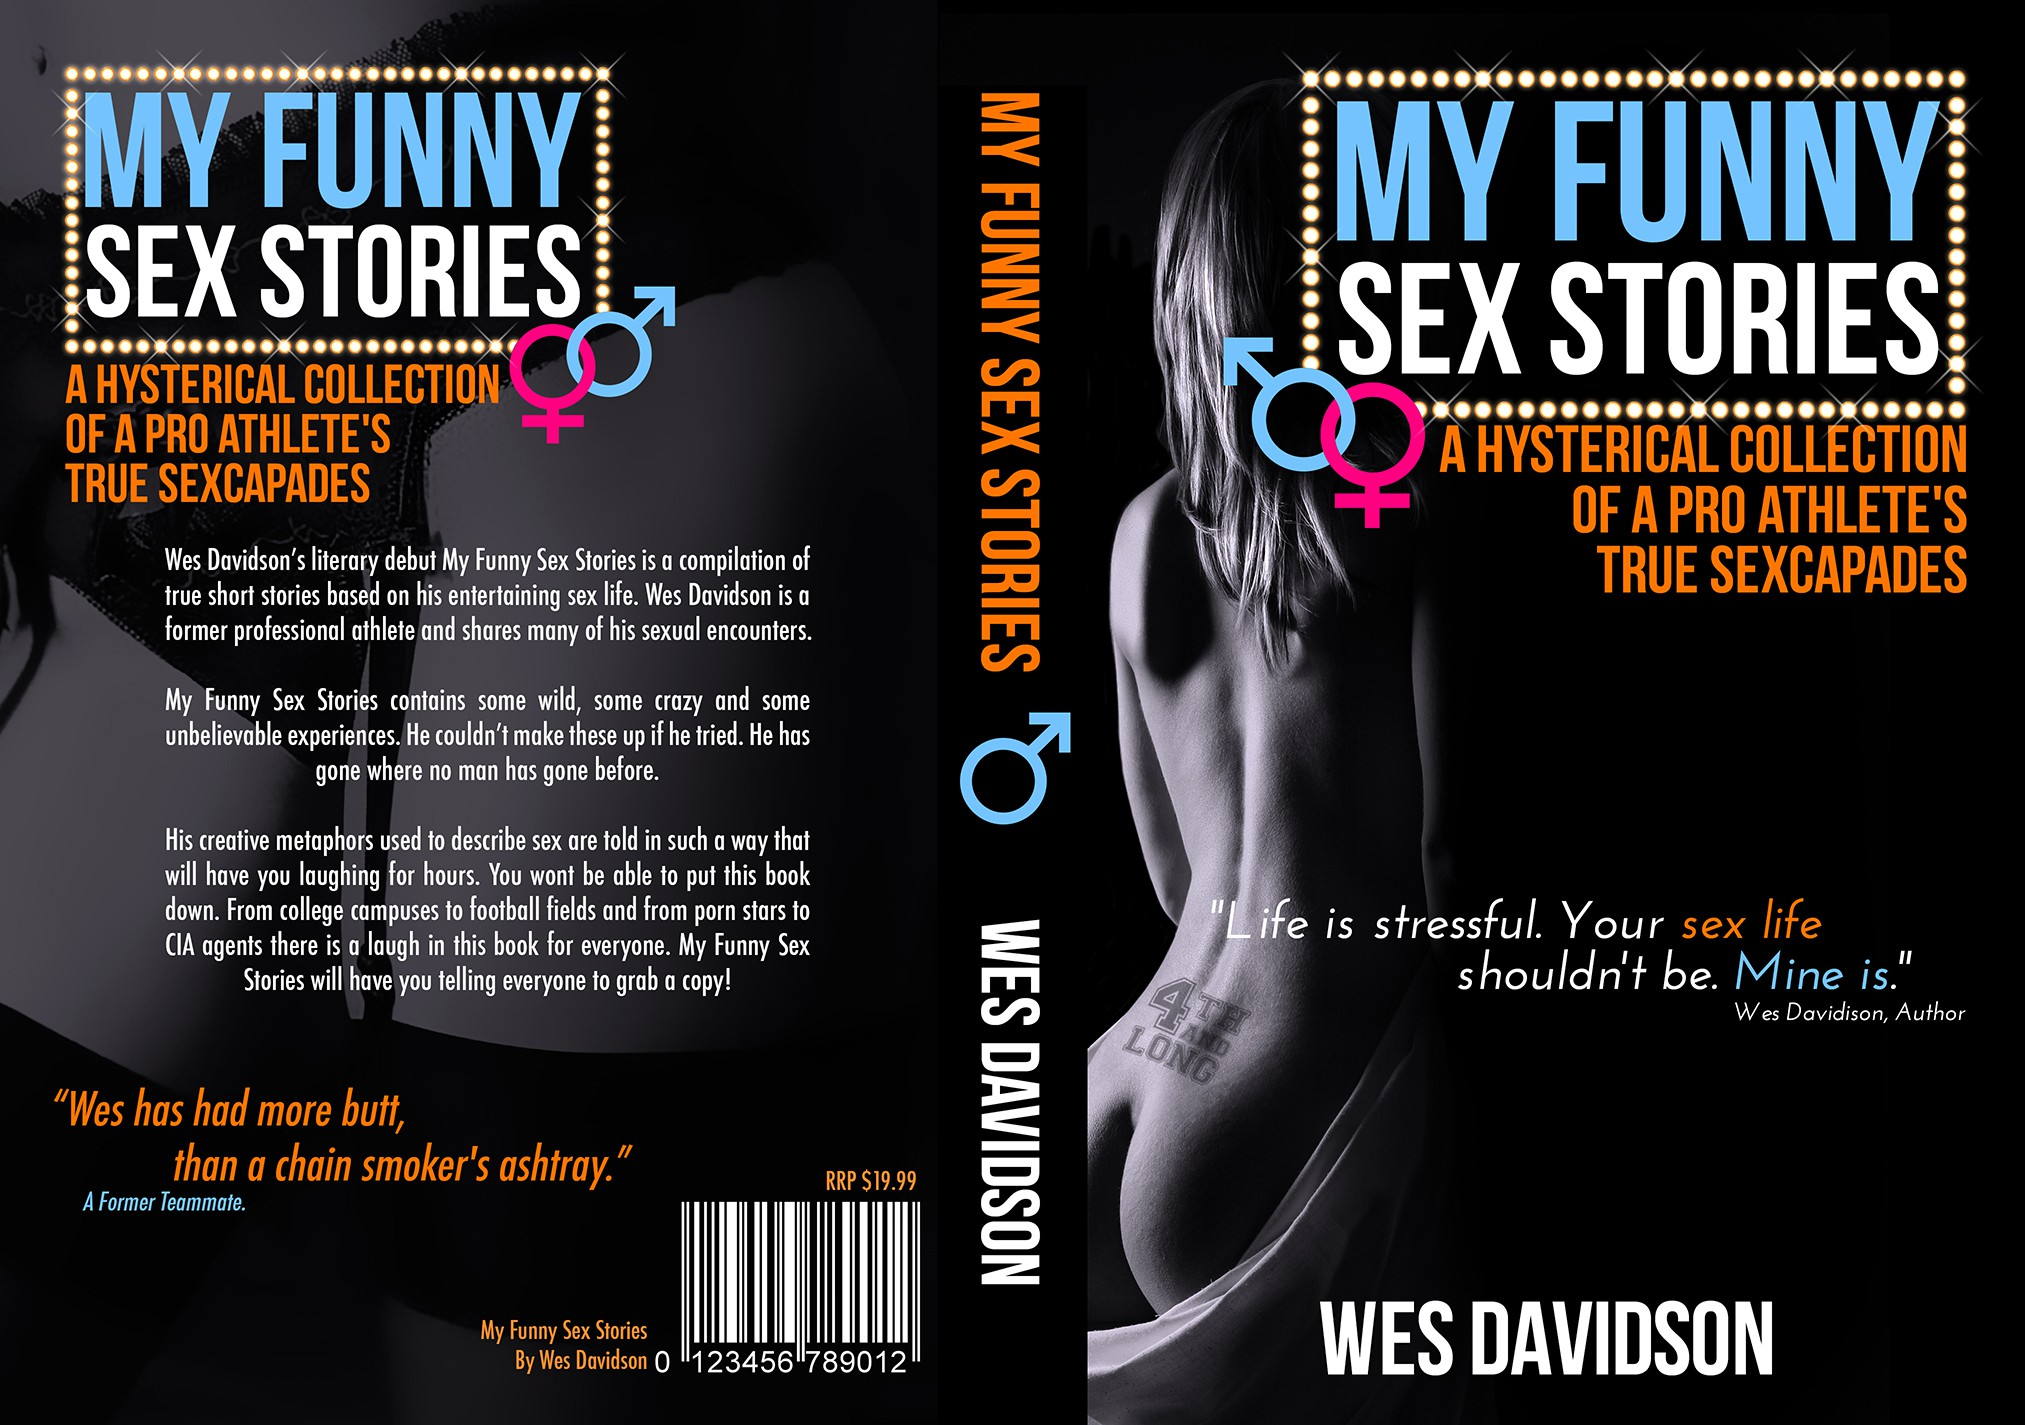 book or magazine cover for Beezy Publishers